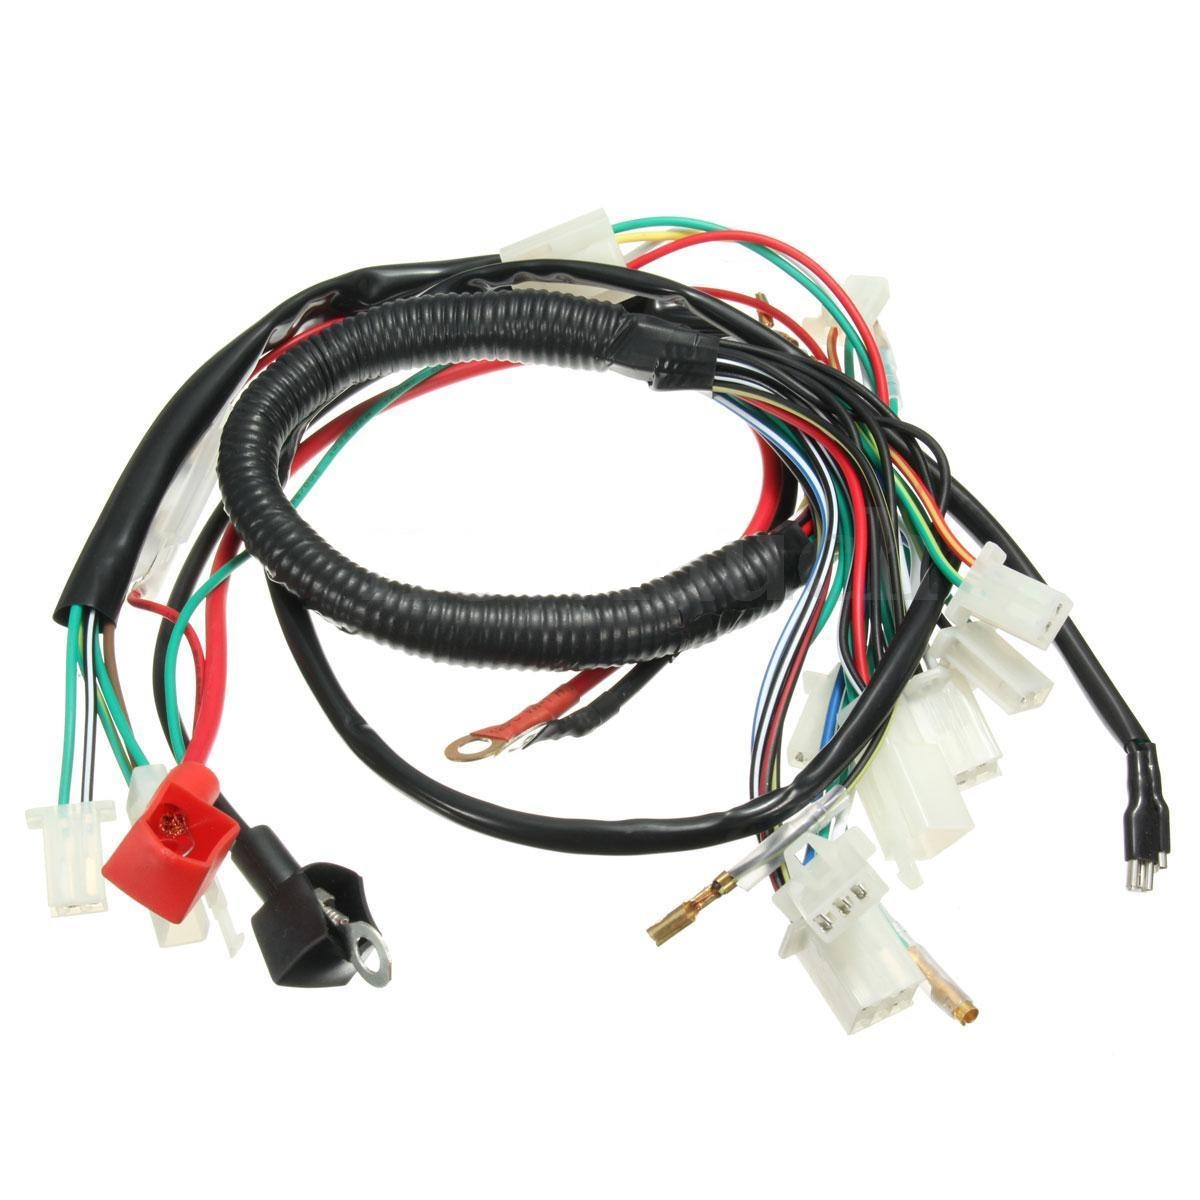 hight resolution of 70cc 110cc 125cc full electric wiring harness atv dirt bike lifan kazuma tao tao